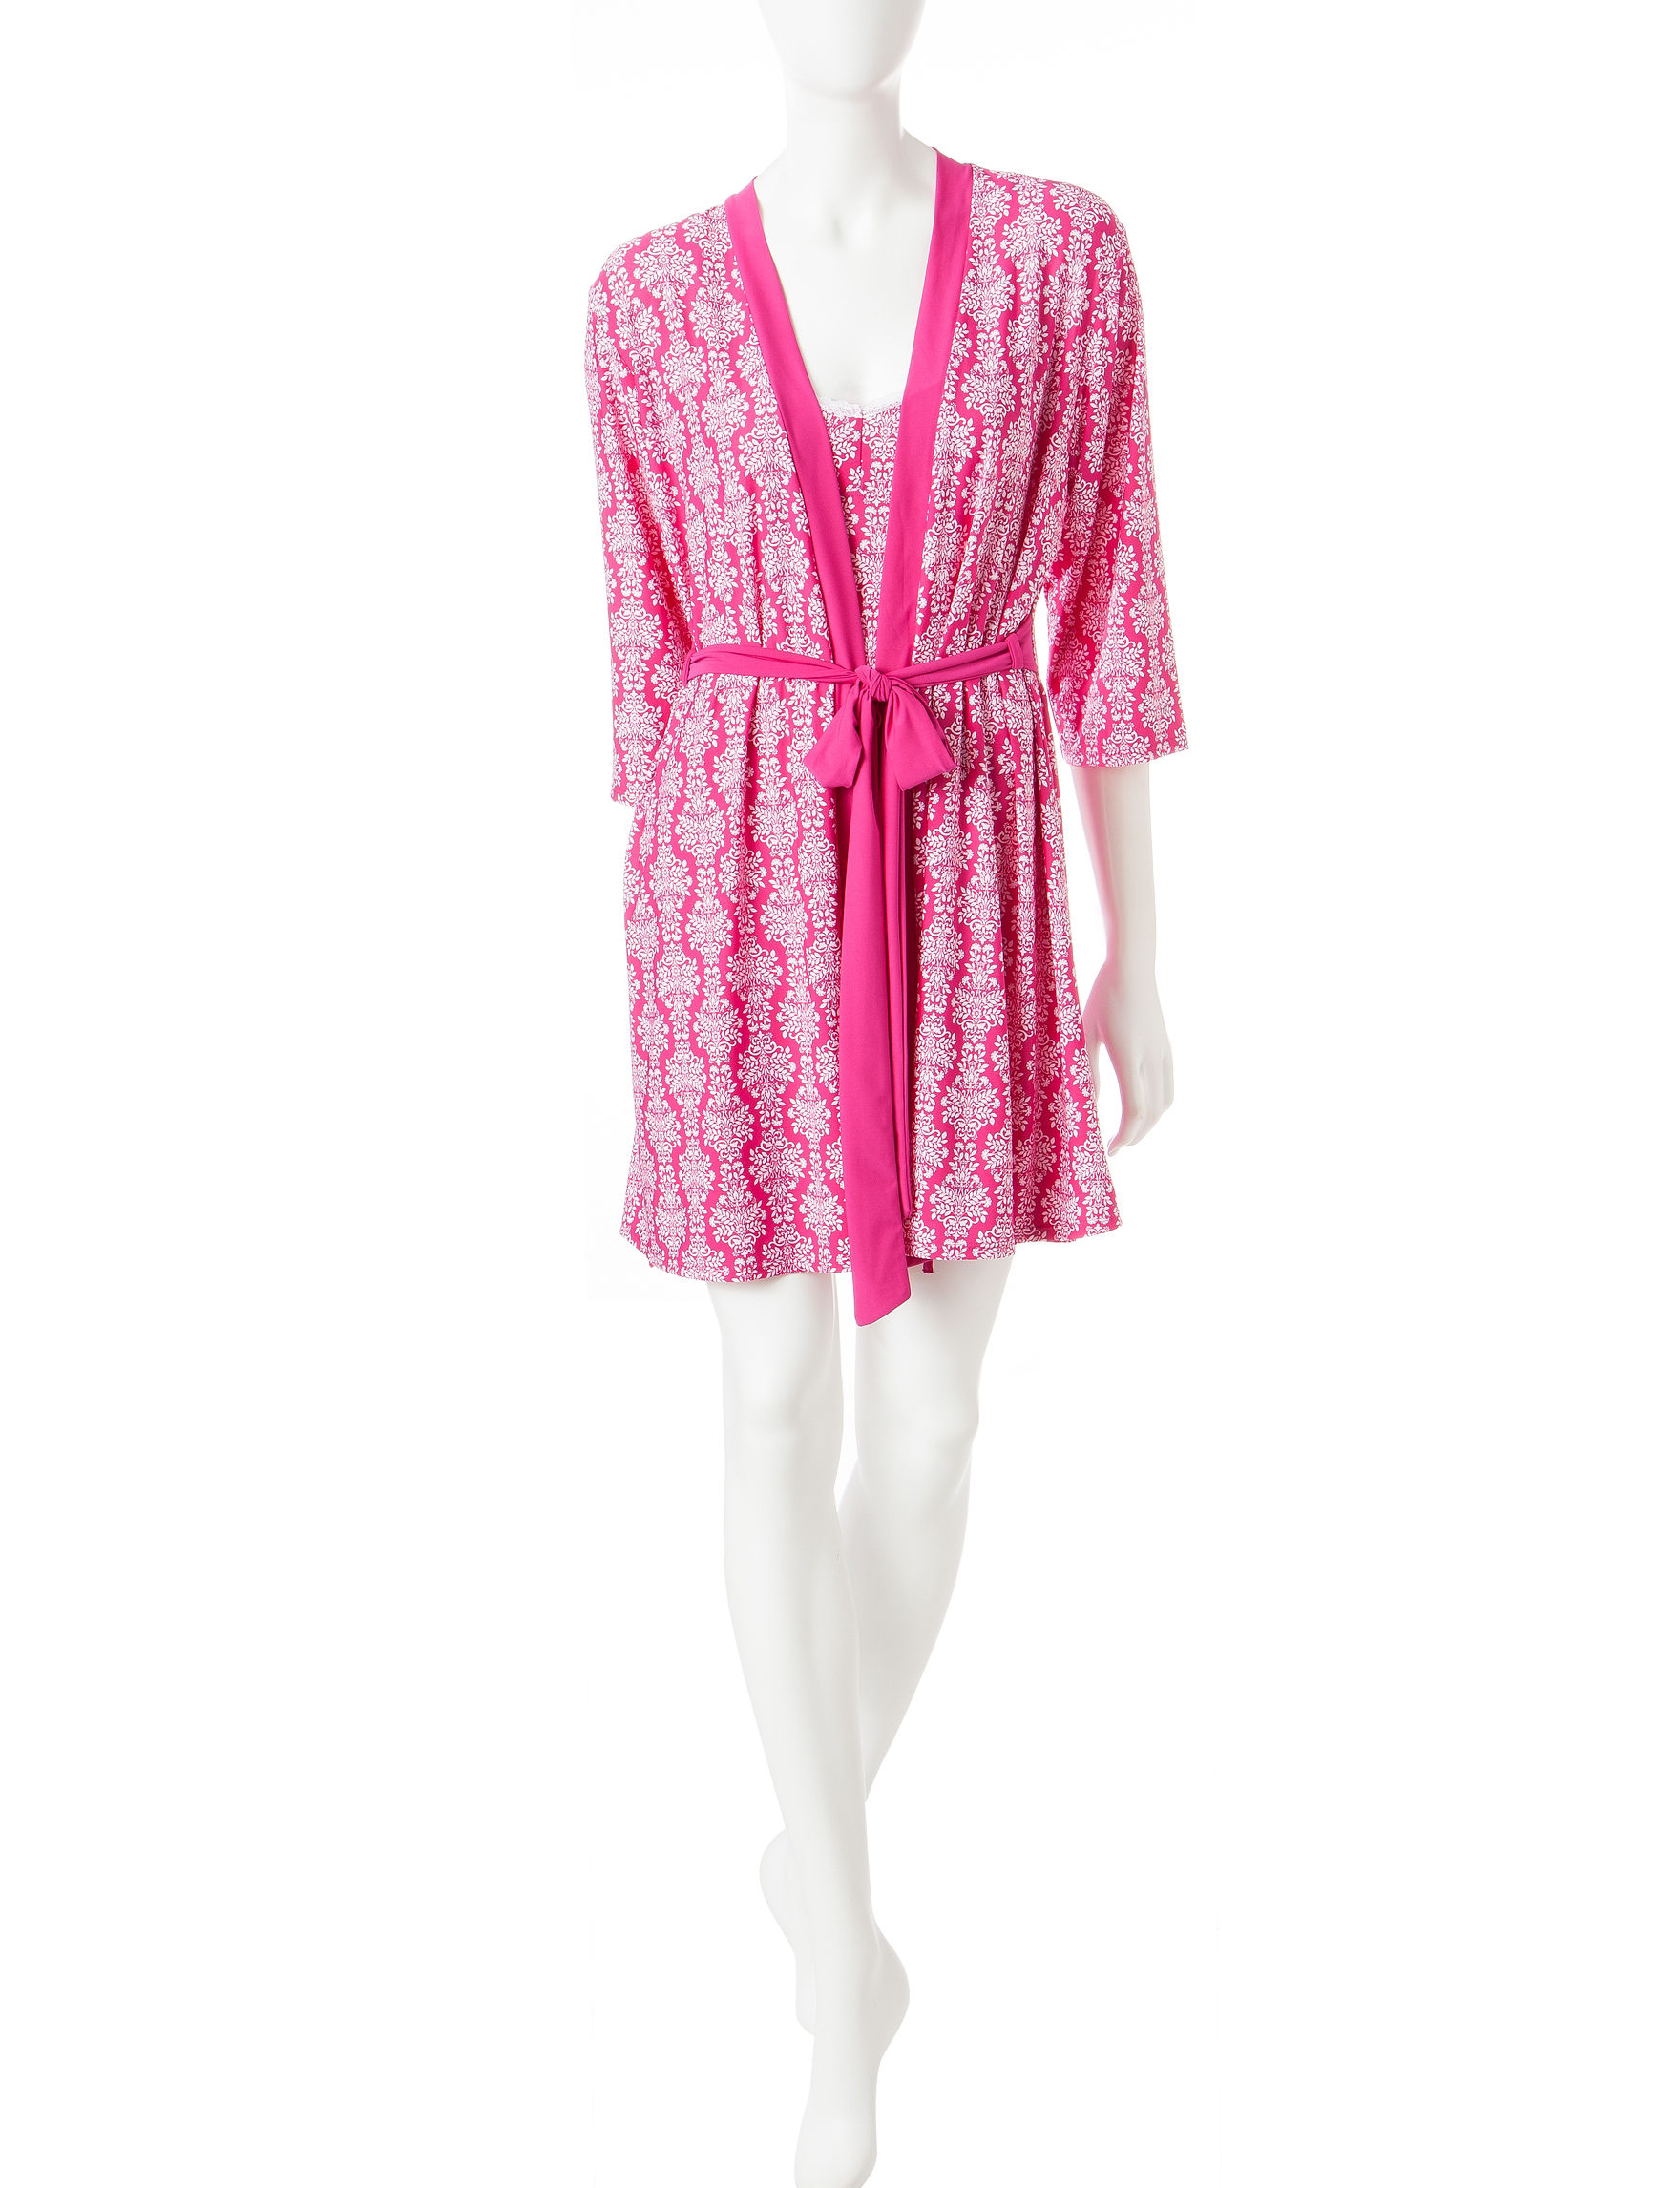 Laura Ashley Pink / White Robes, Wraps & Dusters